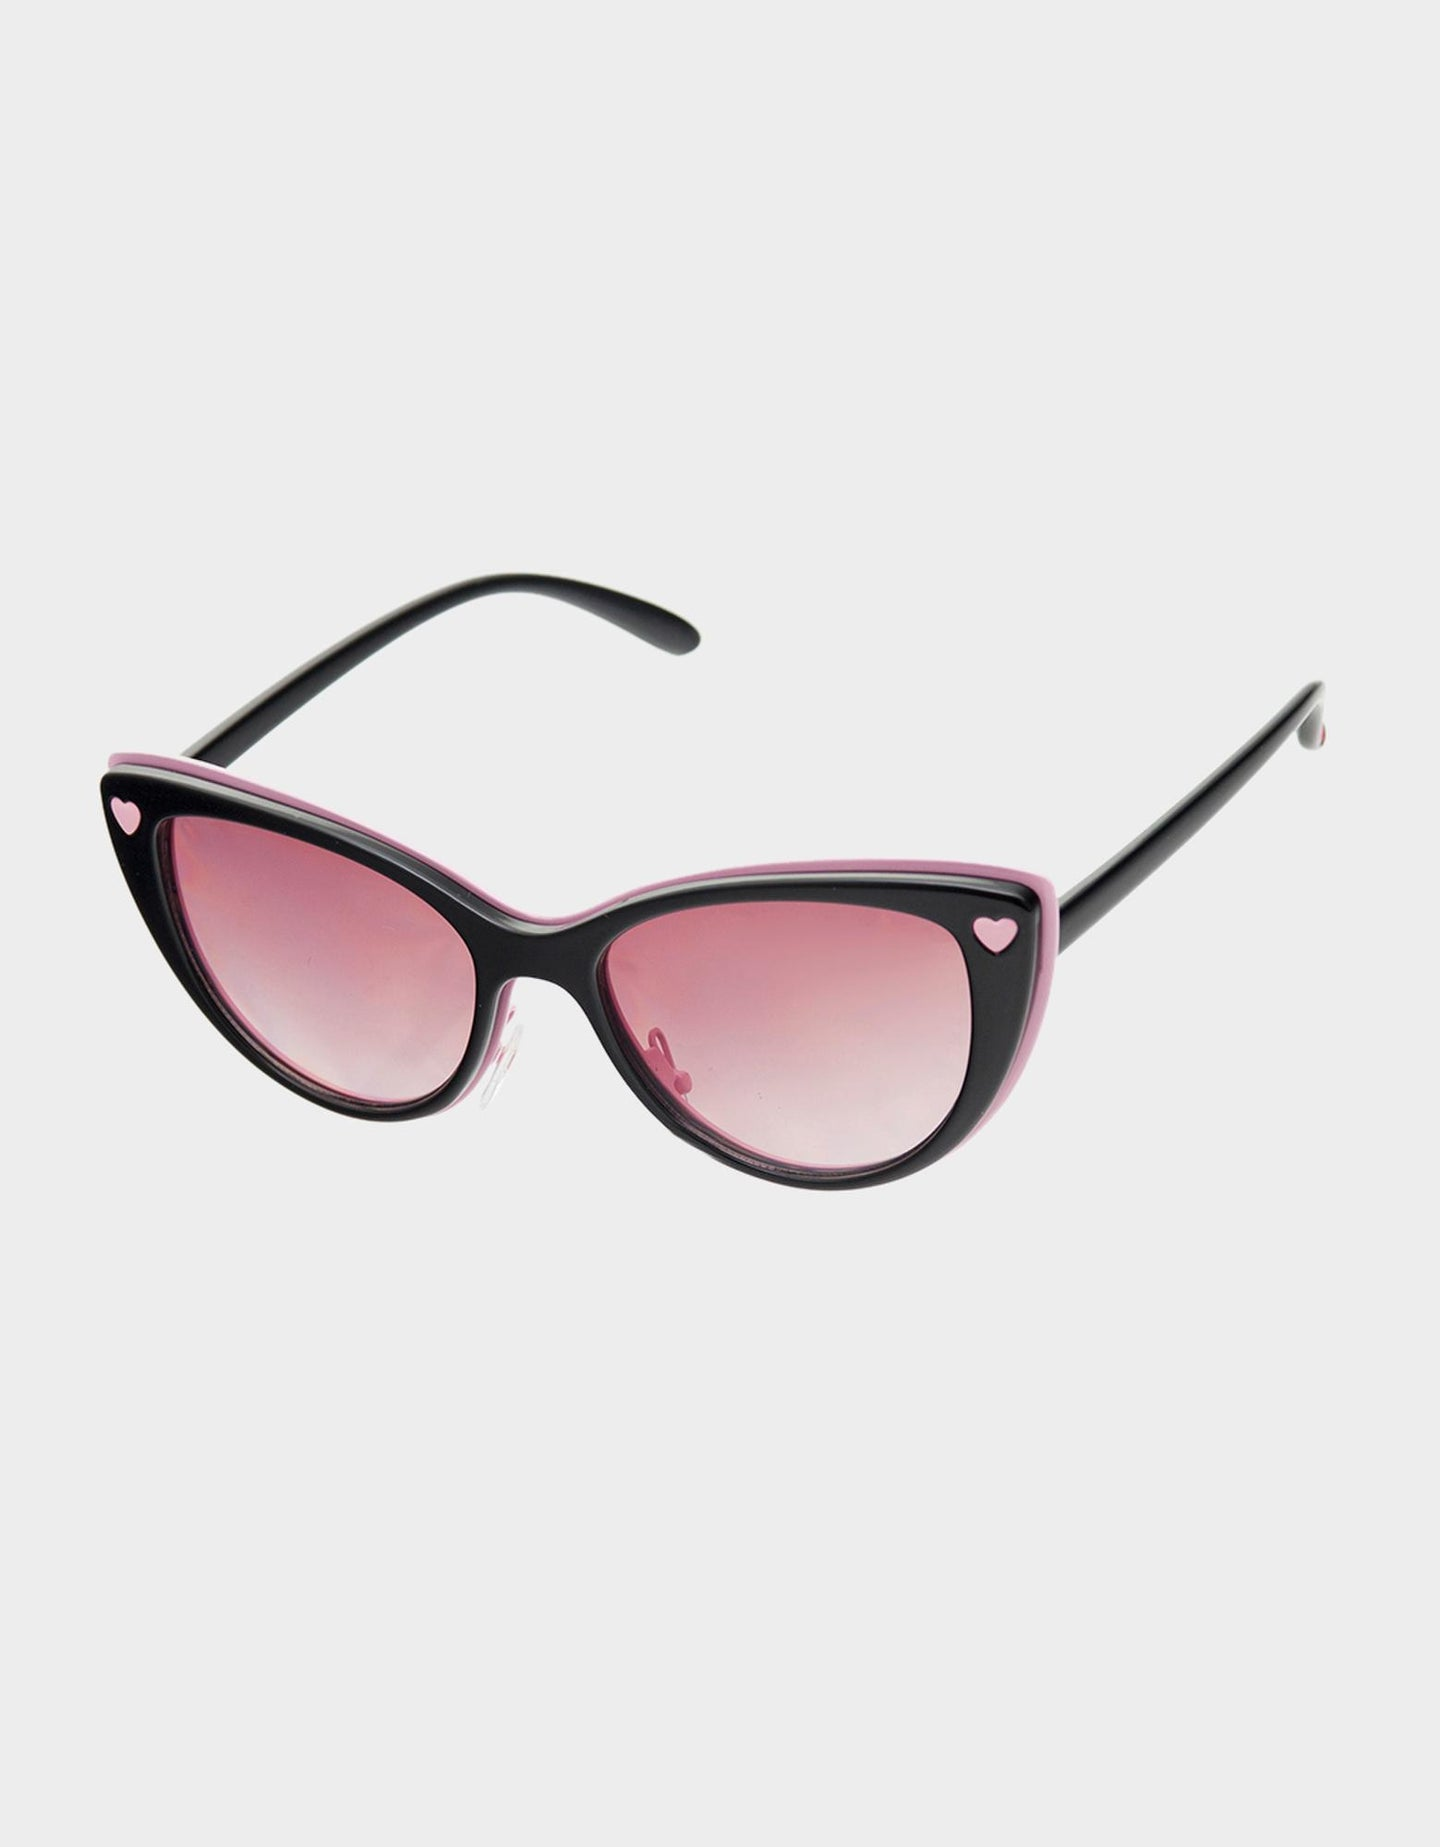 BITTY HEART SUNGLASSES BLACK - ACCESSORIES - Betsey Johnson